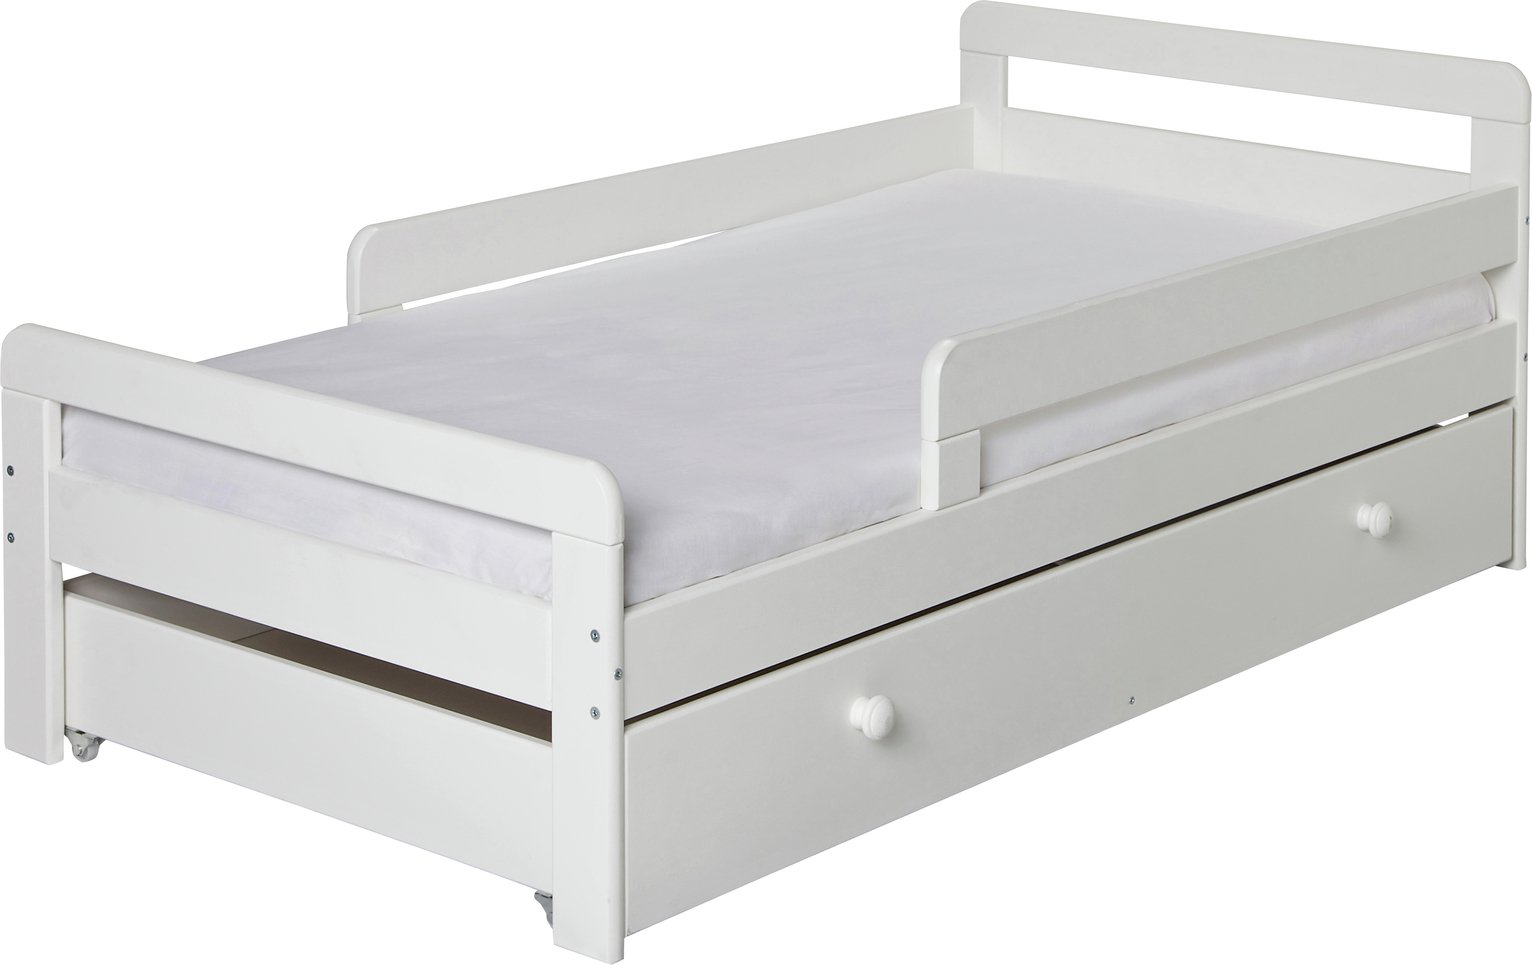 Kids Beds With Storage For Girls With Argos Home Ellis Storage Toddler Bed Frame White Kids Beds Childrens Bunk Cabin Mid Sleeper